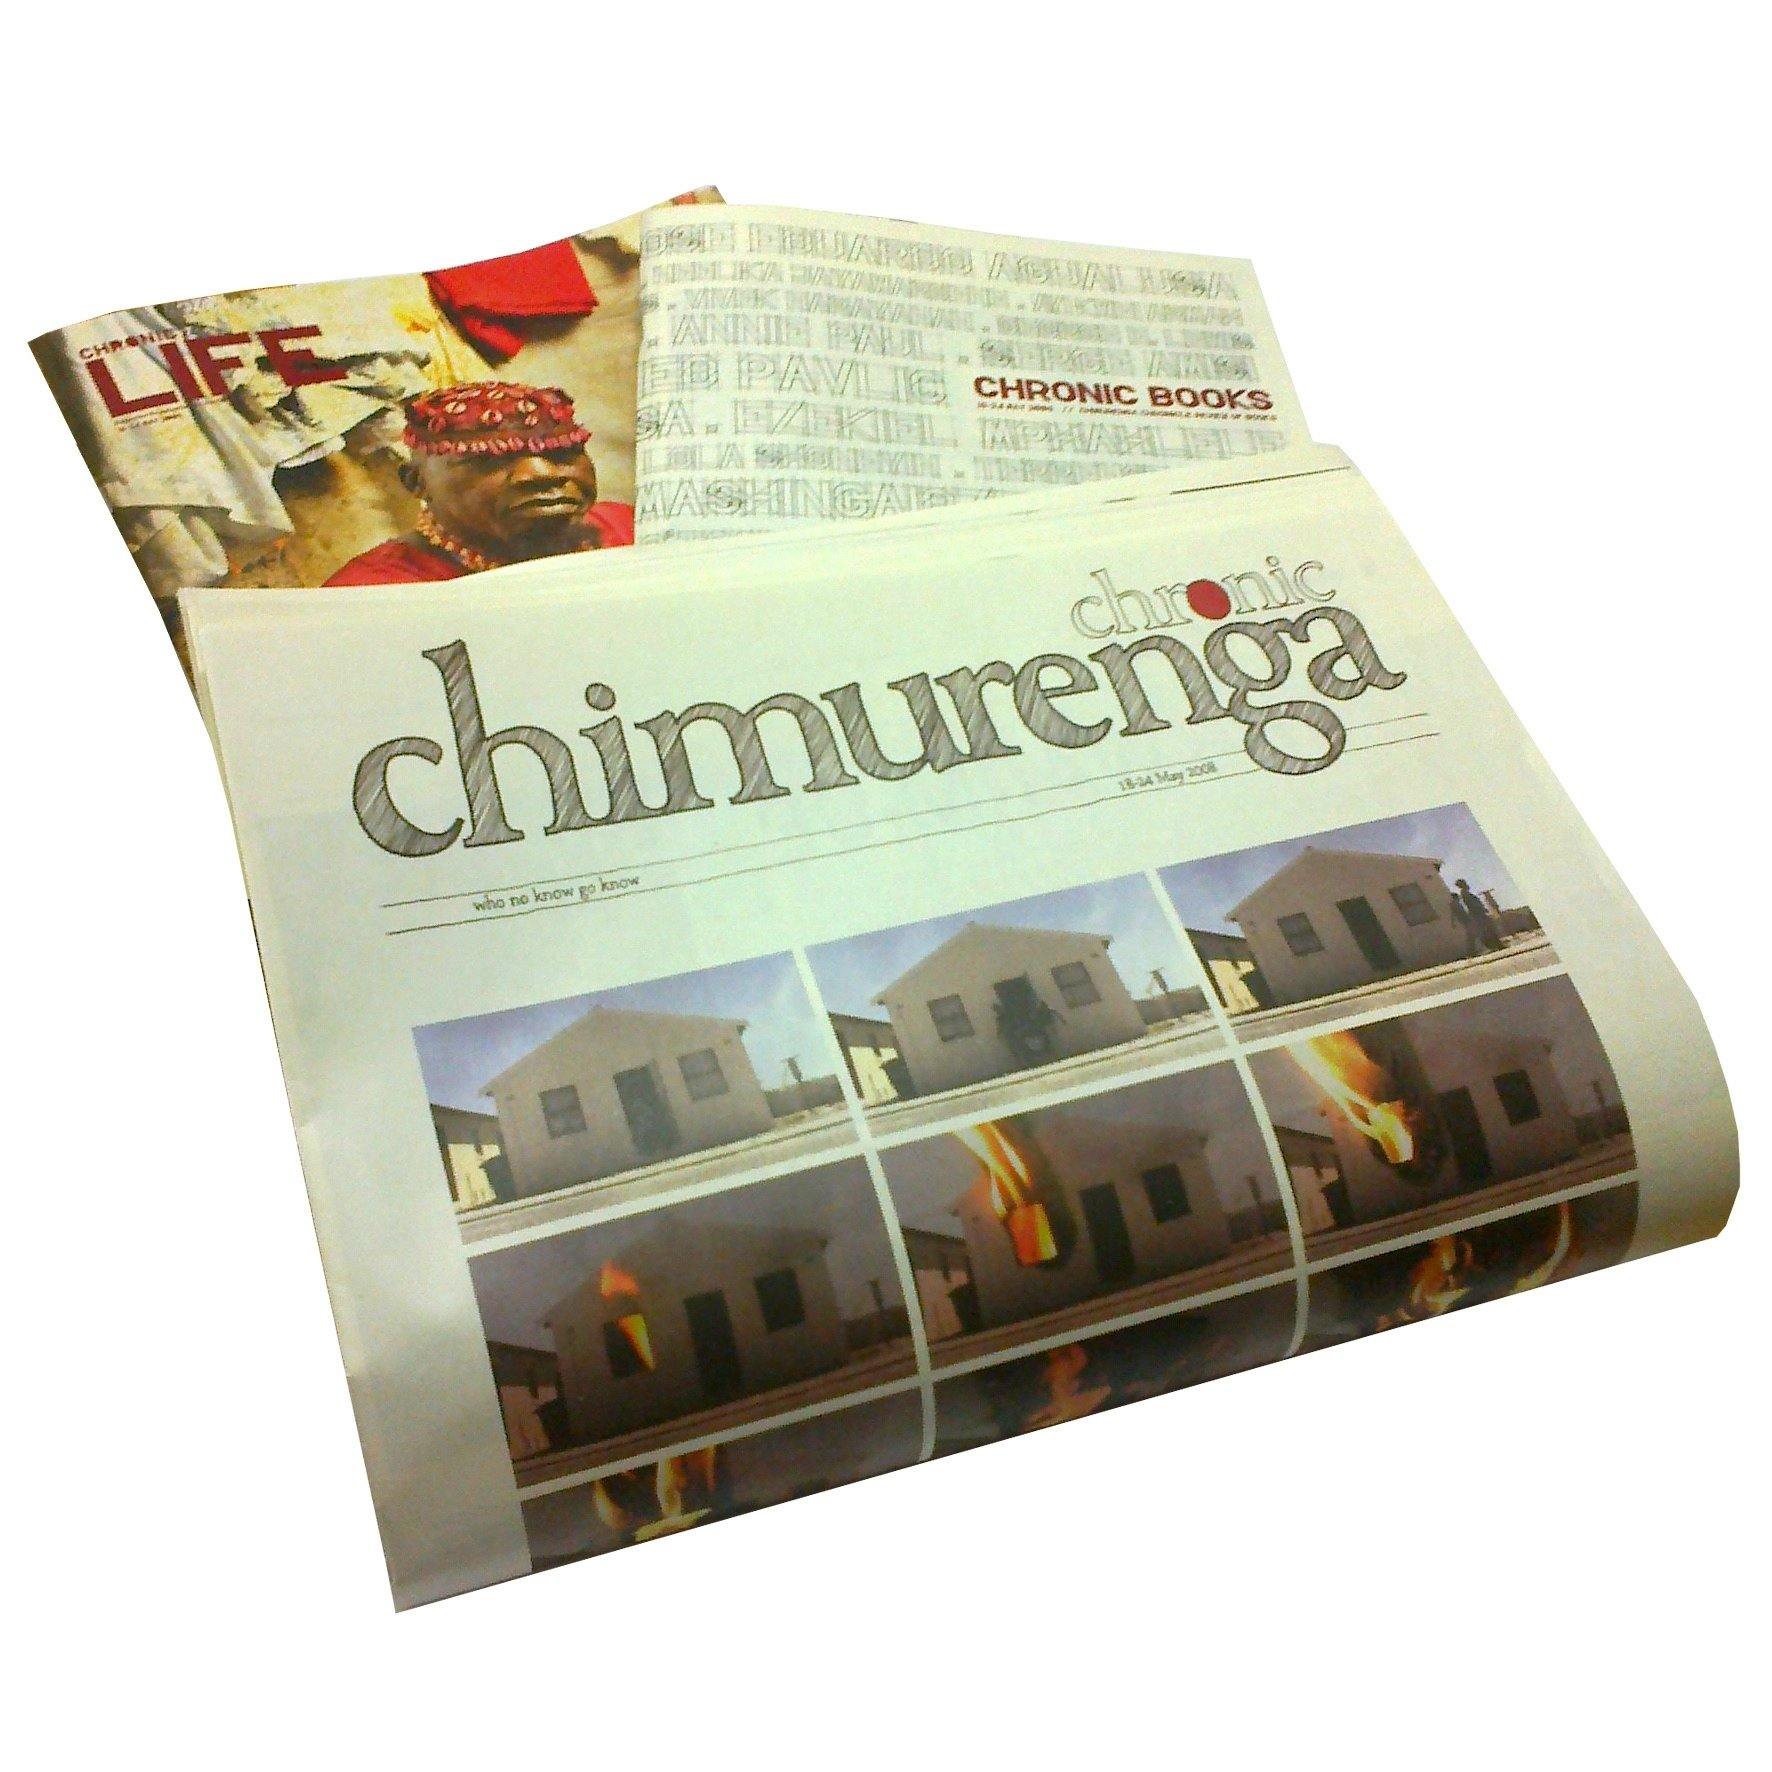 Chimurenga 16: The Chimurenga Chronicle  (October 2011) Print CJ1011